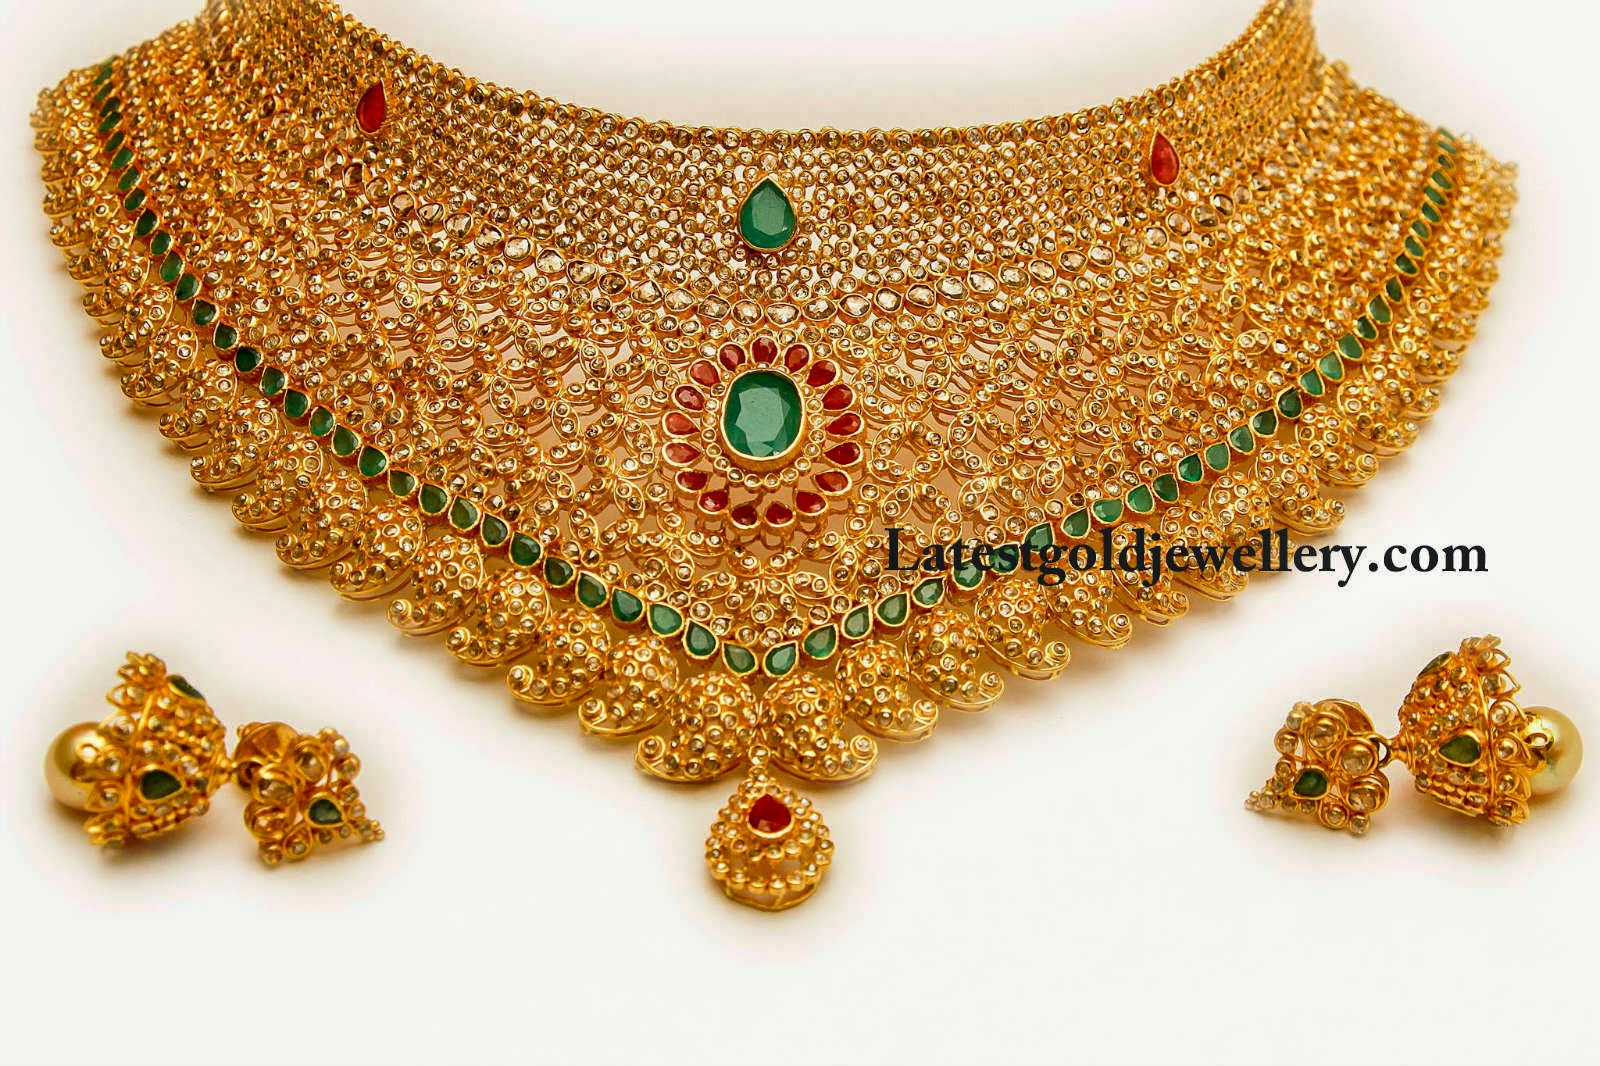 mango two paired embellished all polki gold designs studded step stones motifs with emeralds paisley jewellery heavy over theme bridal antique necklace floral